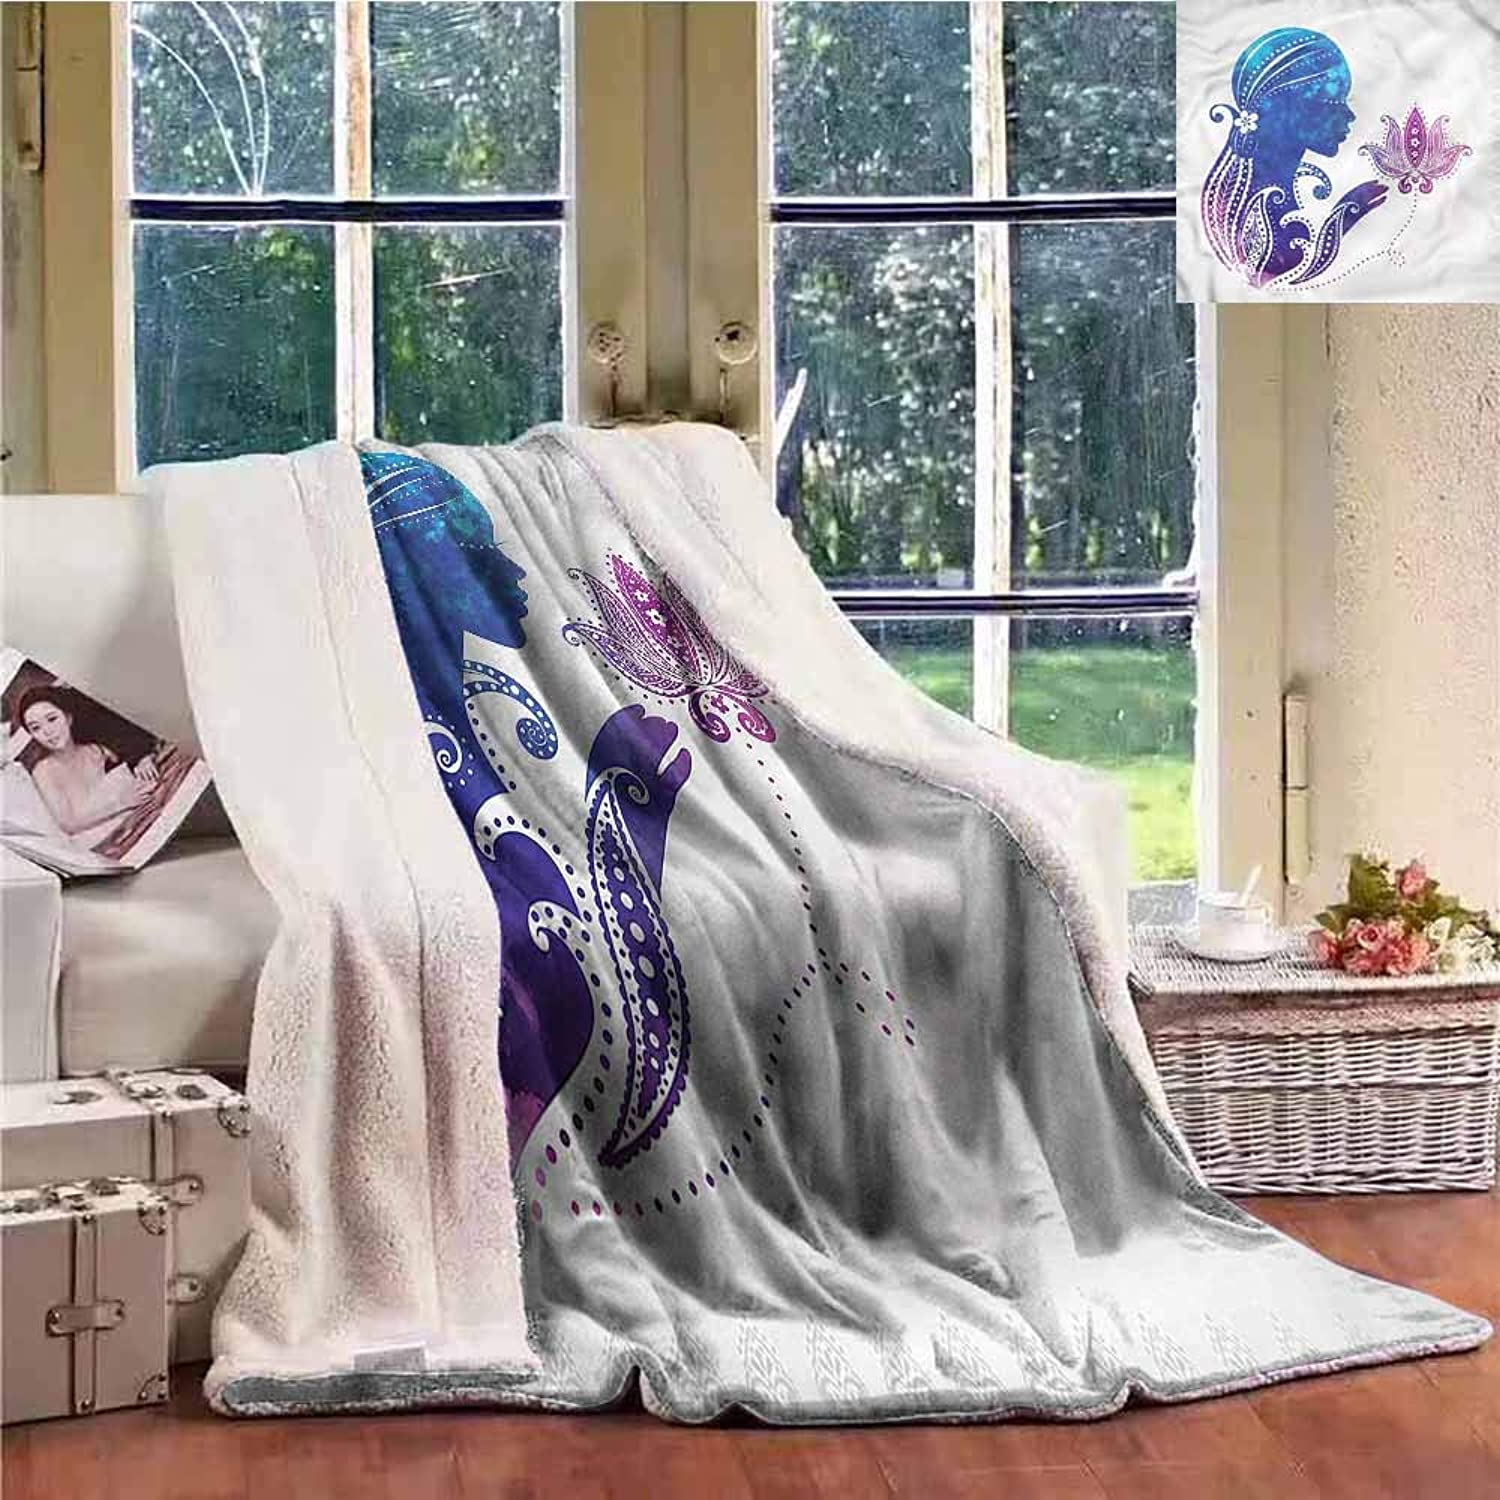 Sunnyhome Throw Blanket Teen Girls Lady with Floral Hair Autumn and Winter Thick Blanket W59x31L